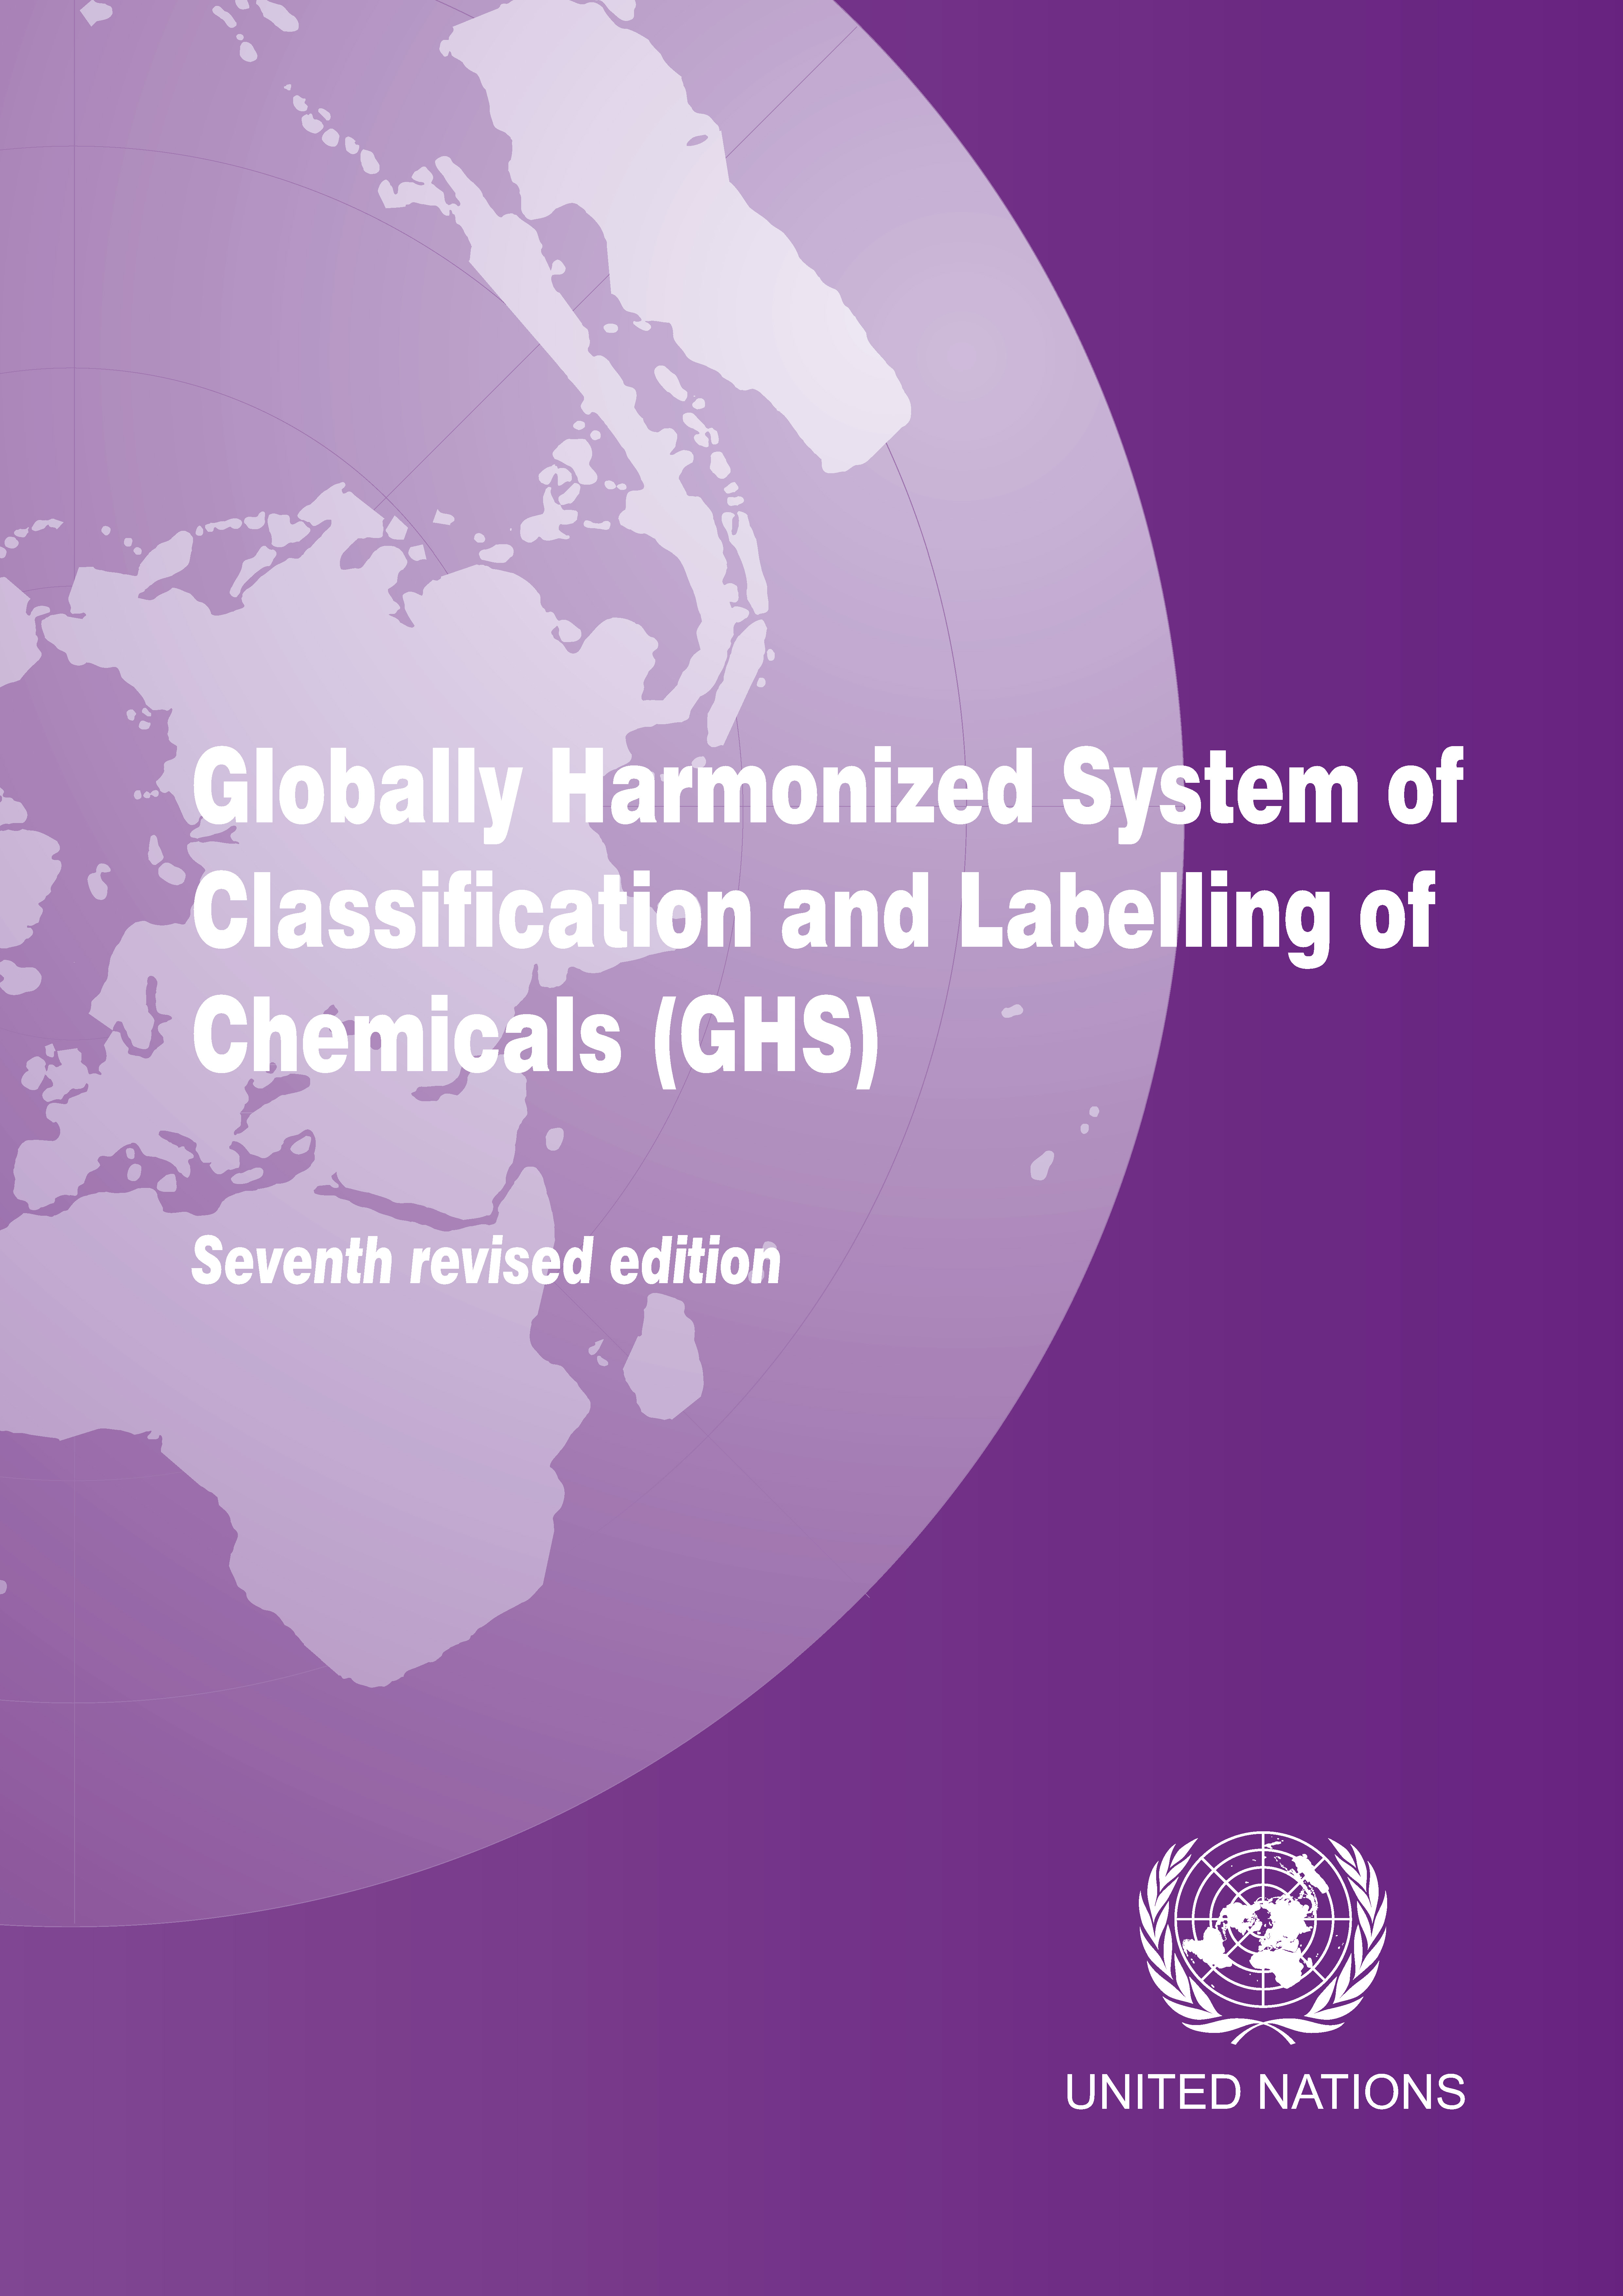 Globally Harmonized System of Classification and Labelling of Chemicals (GHS): 7th Revised Edition